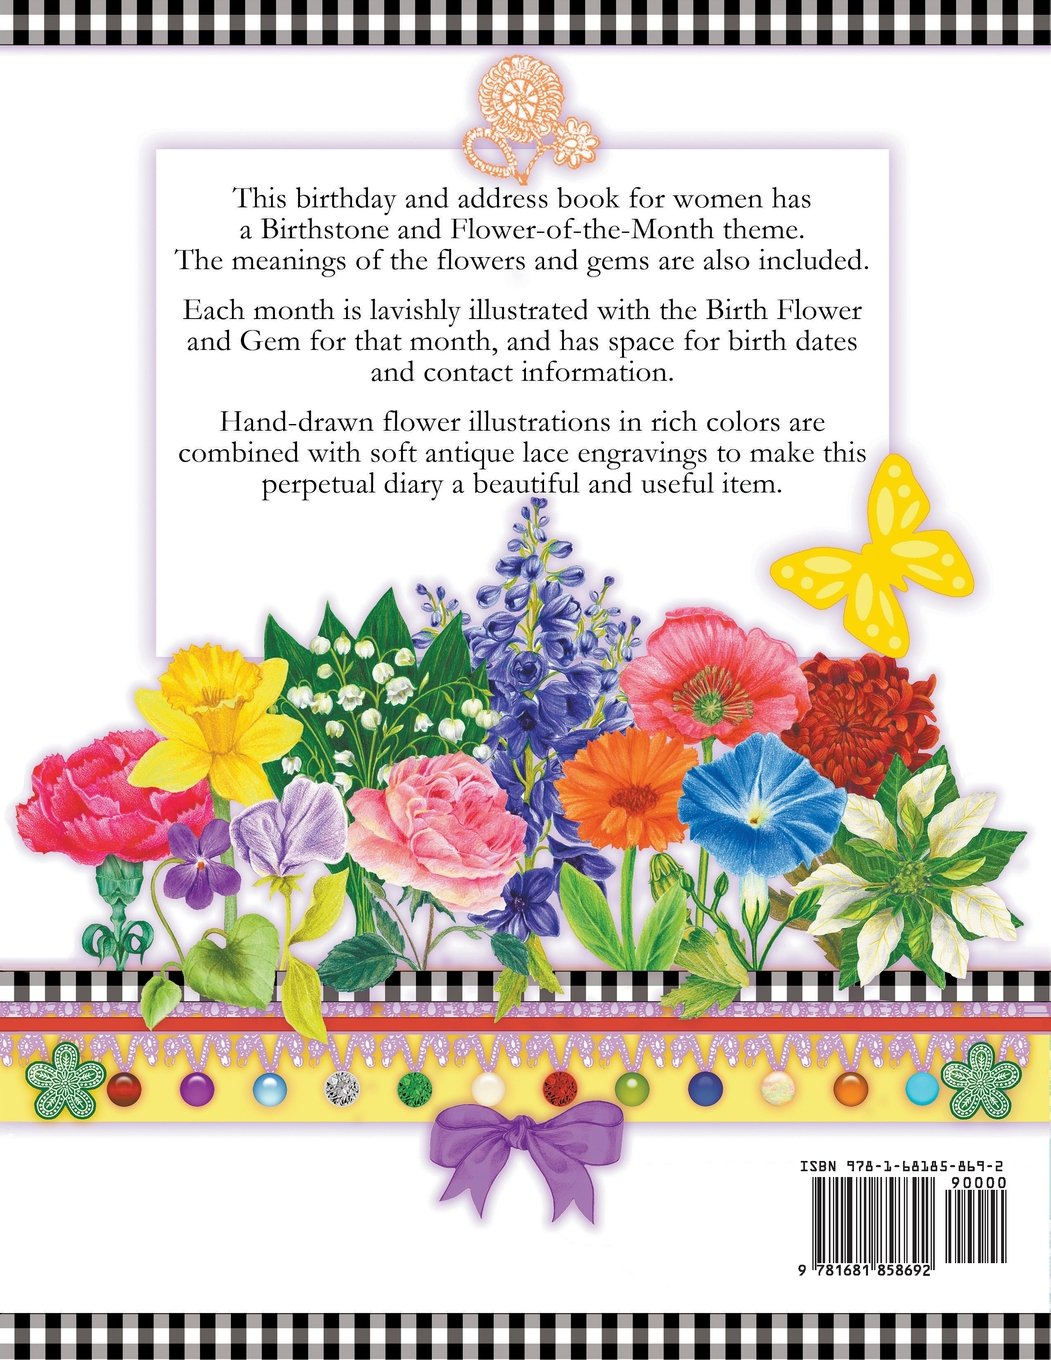 Birthday book with birth flowers and gems a perpetual diary with birthday book with birth flowers and gems a perpetual diary with birthstone and flower of the month anneke lipsanen 9781681858692 amazon books izmirmasajfo Images